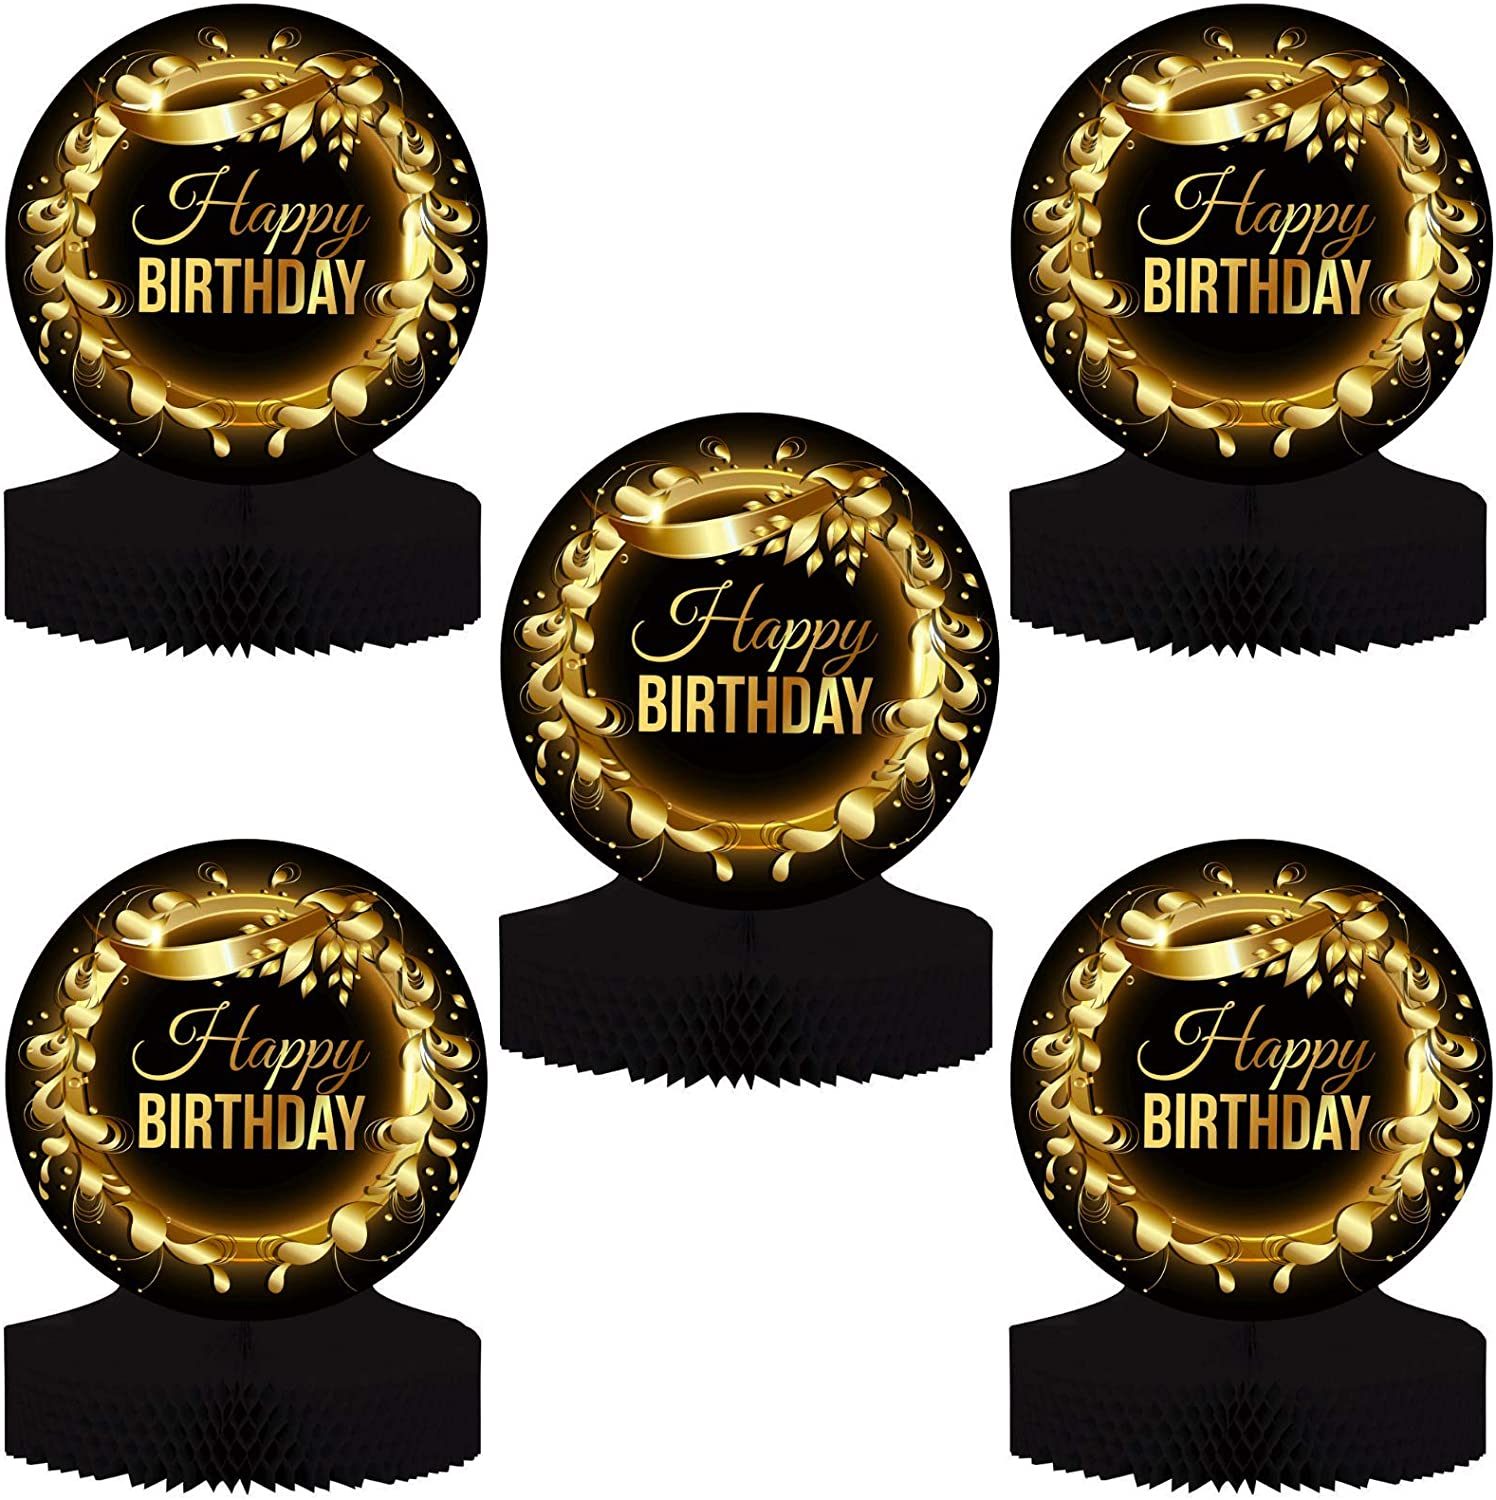 """Birthday Table Centerpiece Decoration - 5-Pack Double Sided Cardstock & Tissue Paper Honeycomb Happy Birthday Decorations - 12"""" Birthday Party Decorations Centerpieces for Table Decorations"""